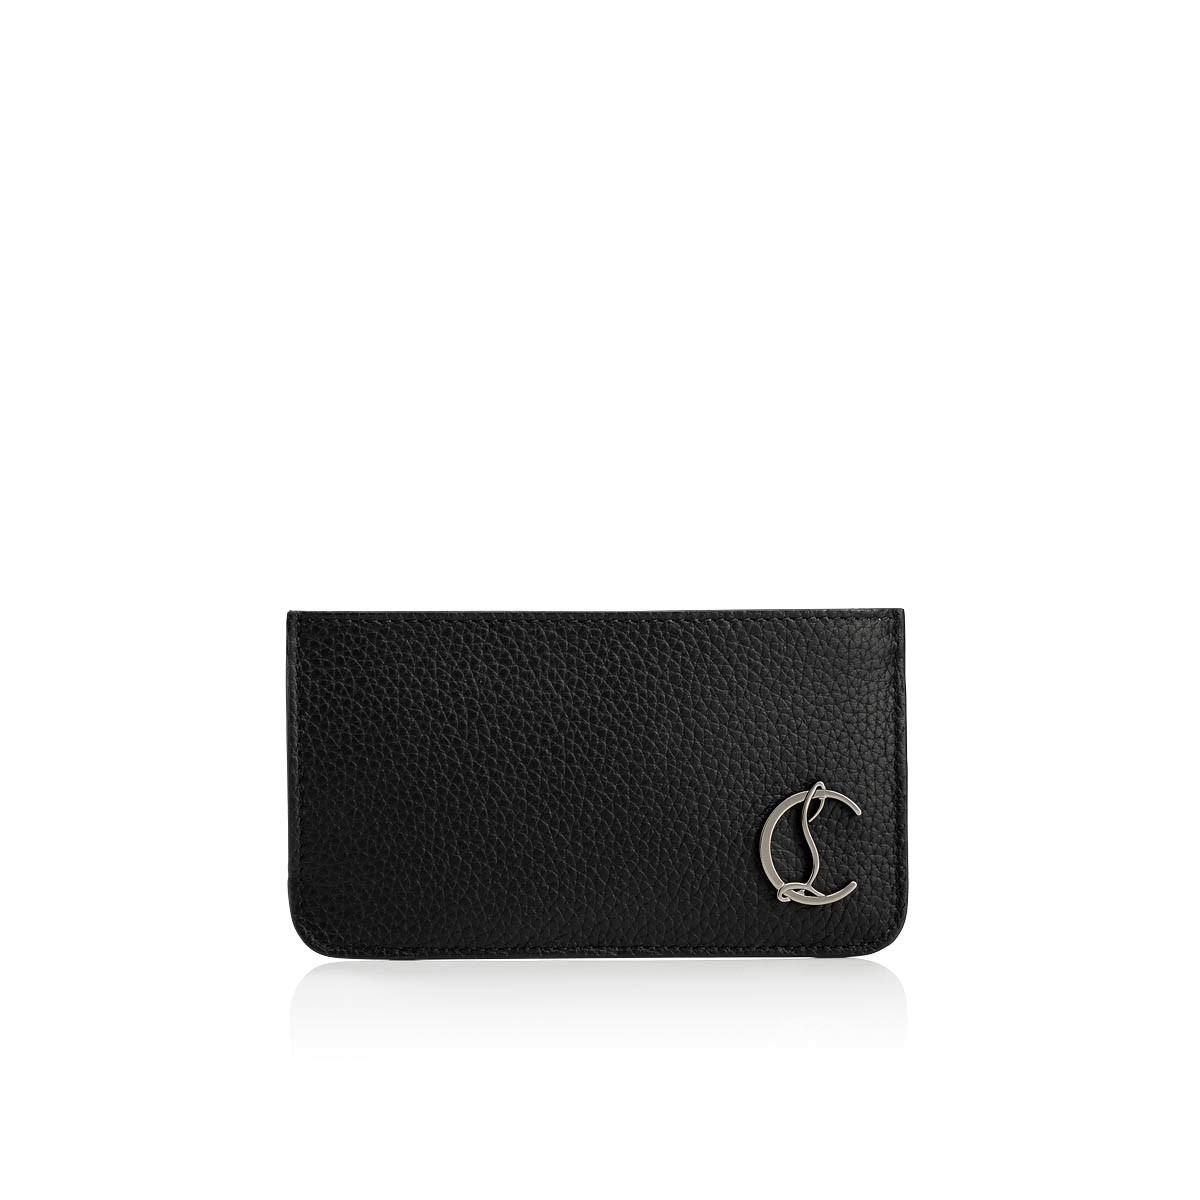 Small Leather Goods - Credilou - Christian Louboutin